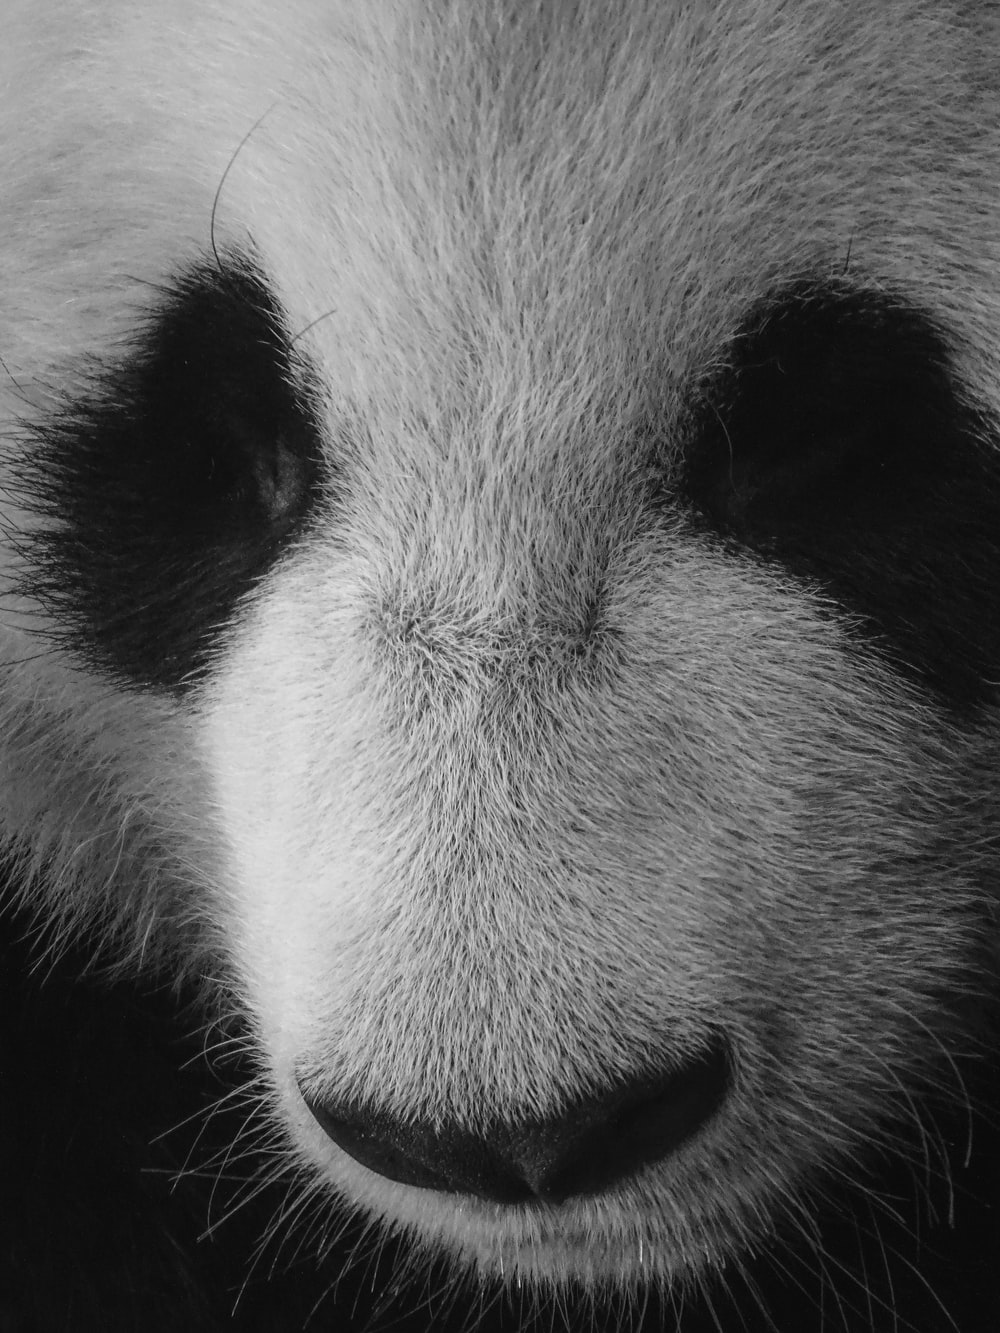 white and black panda in close up photography